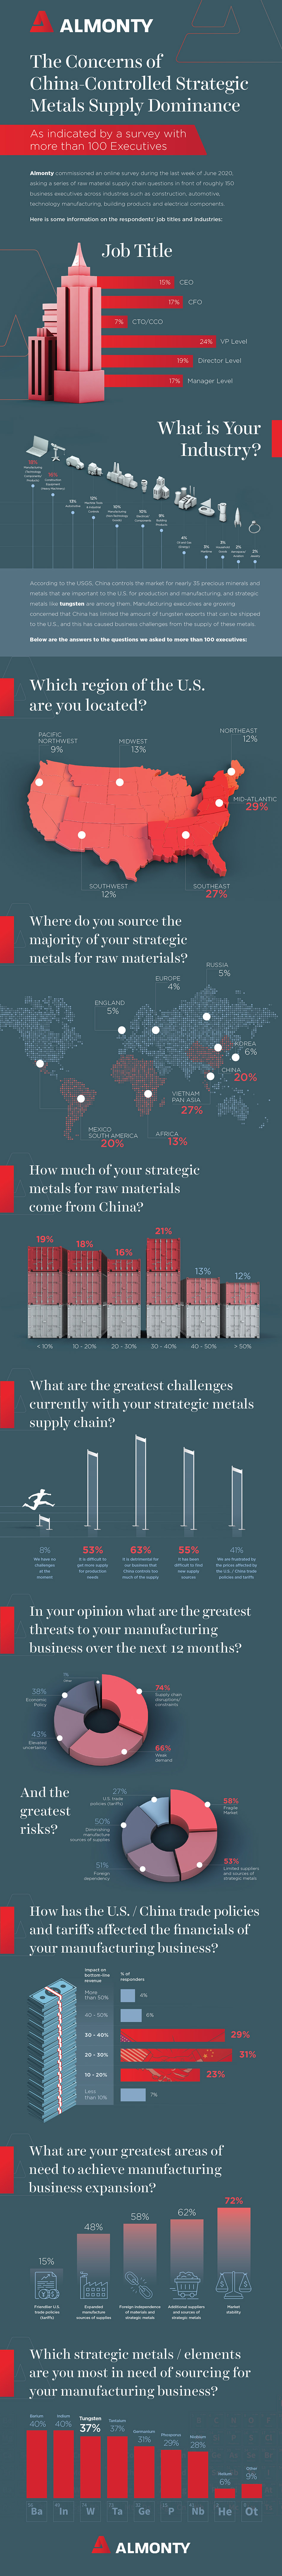 Infographic - The Concerns of China-Controlled Strategic Metals Supply Dominance